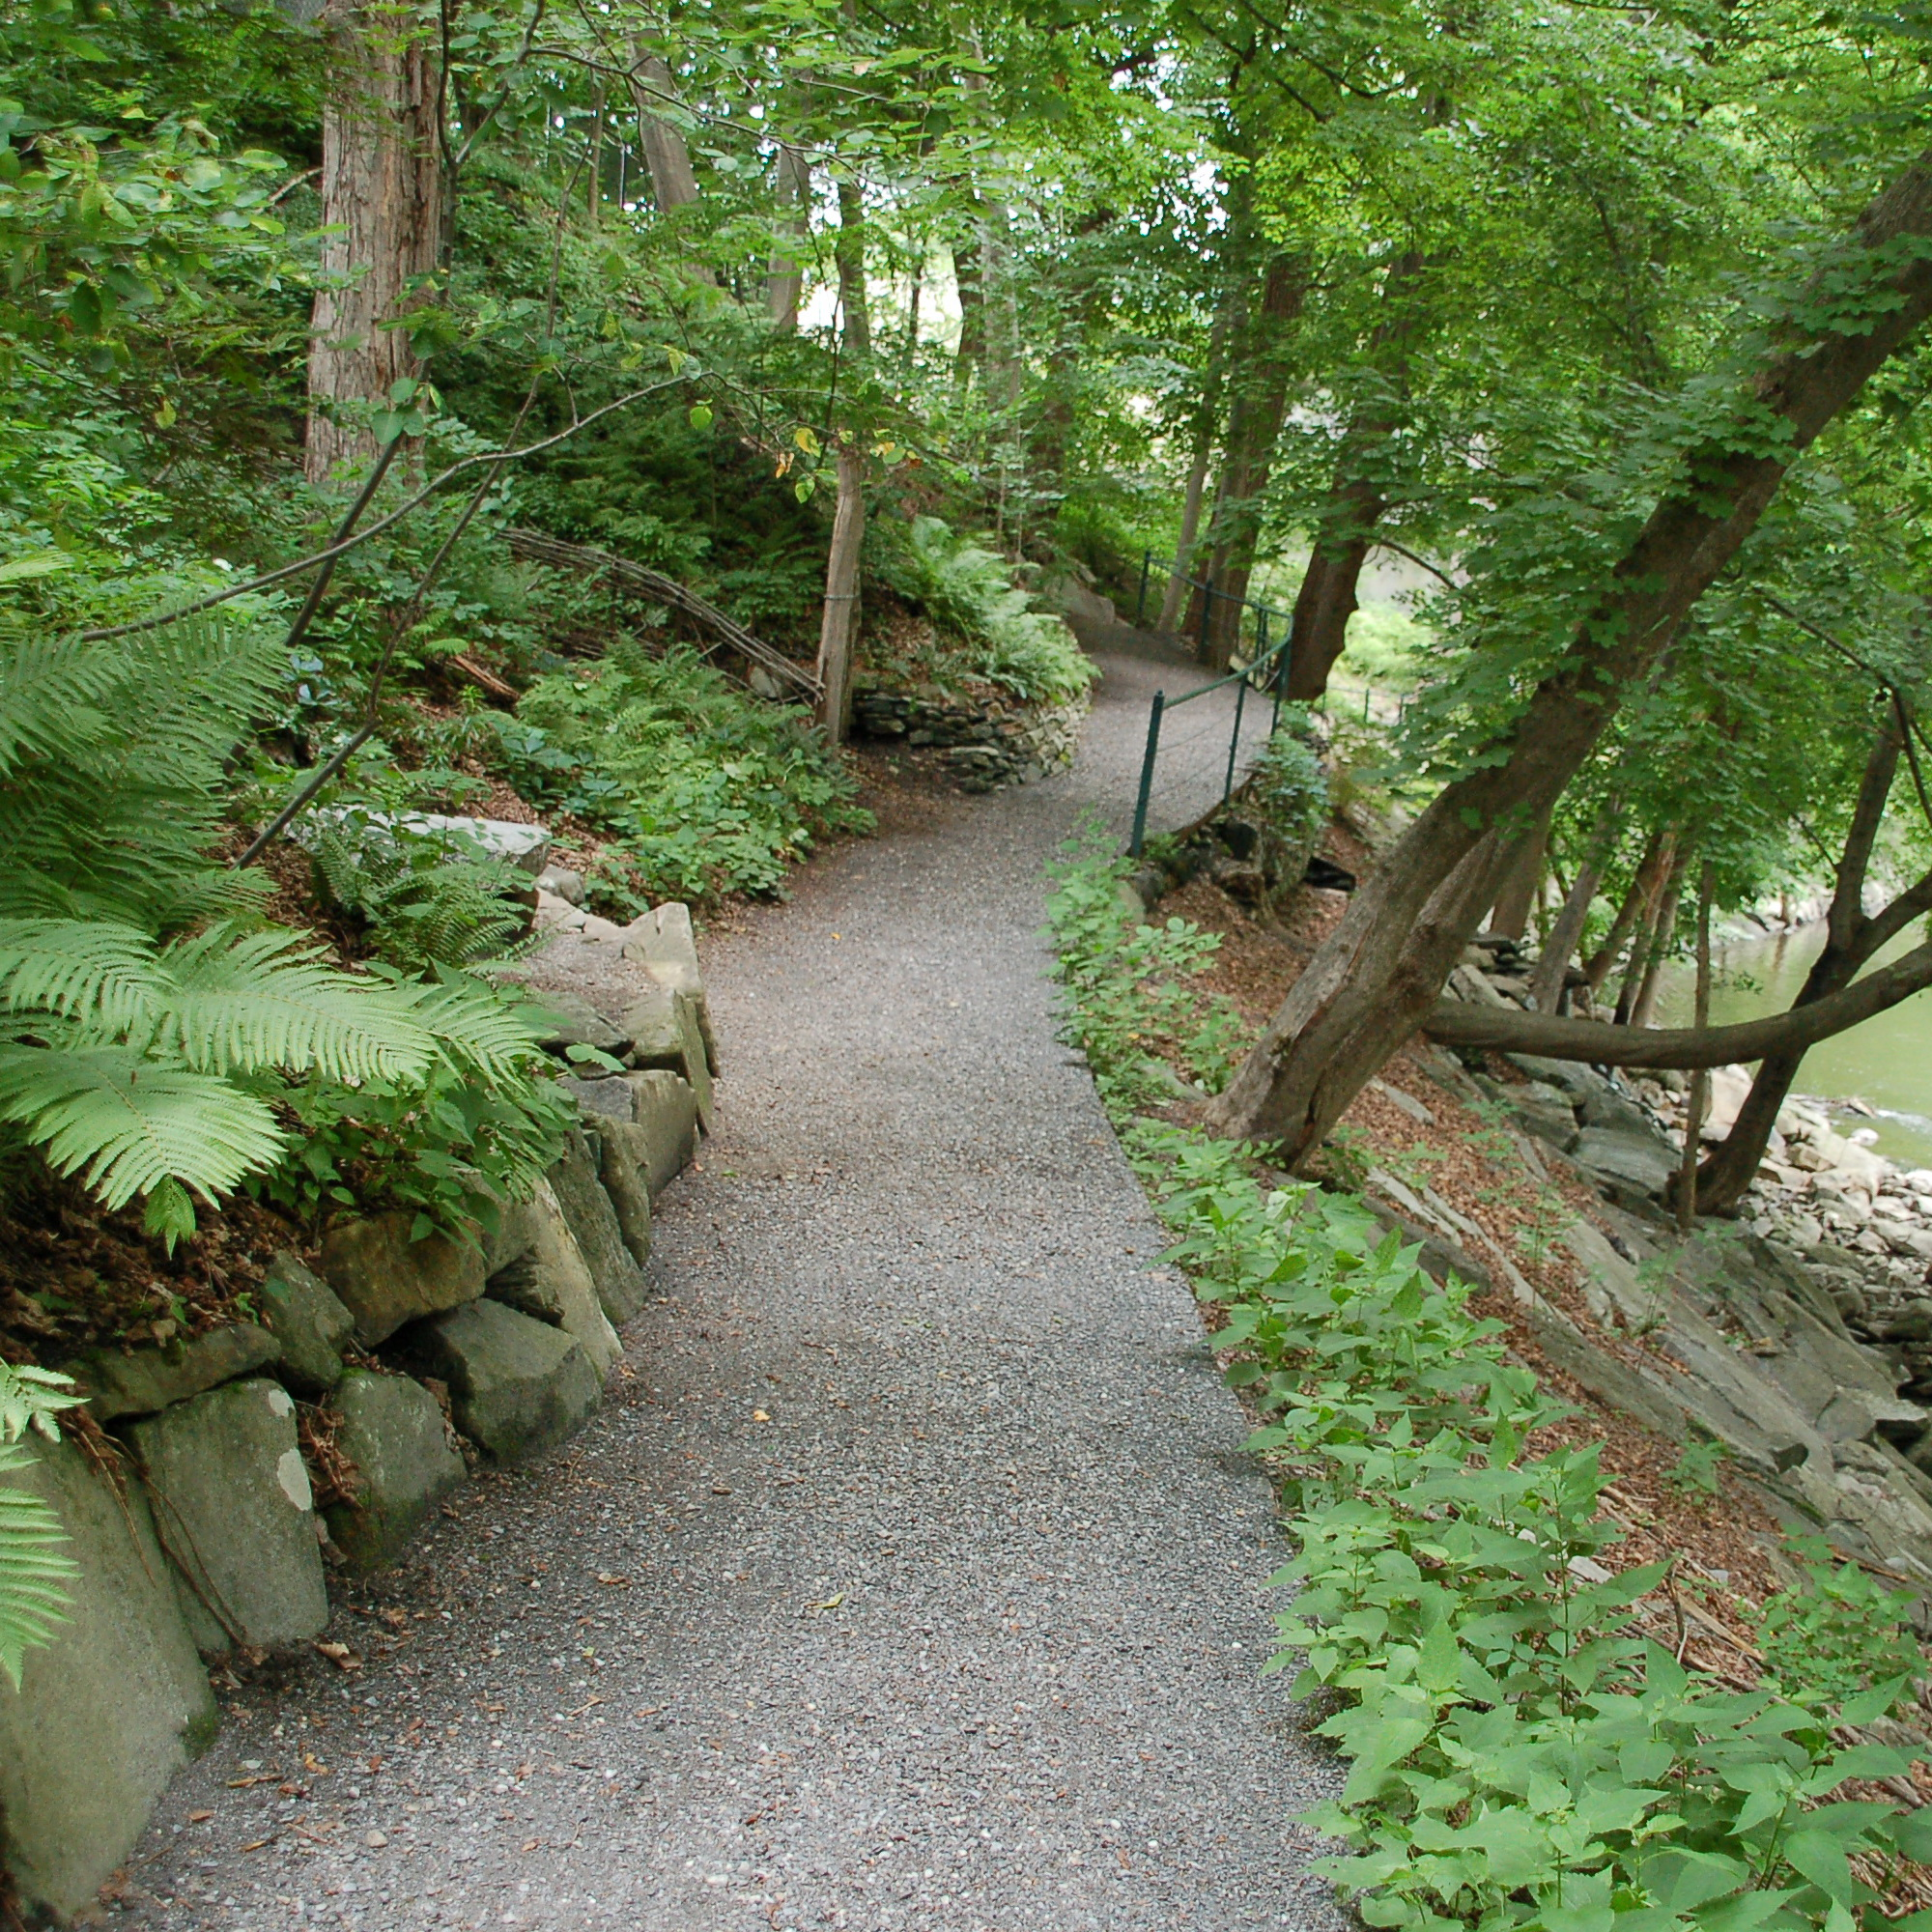 Peter Jensen to provide a Riverside Trail Conference in Great Barrington, MA